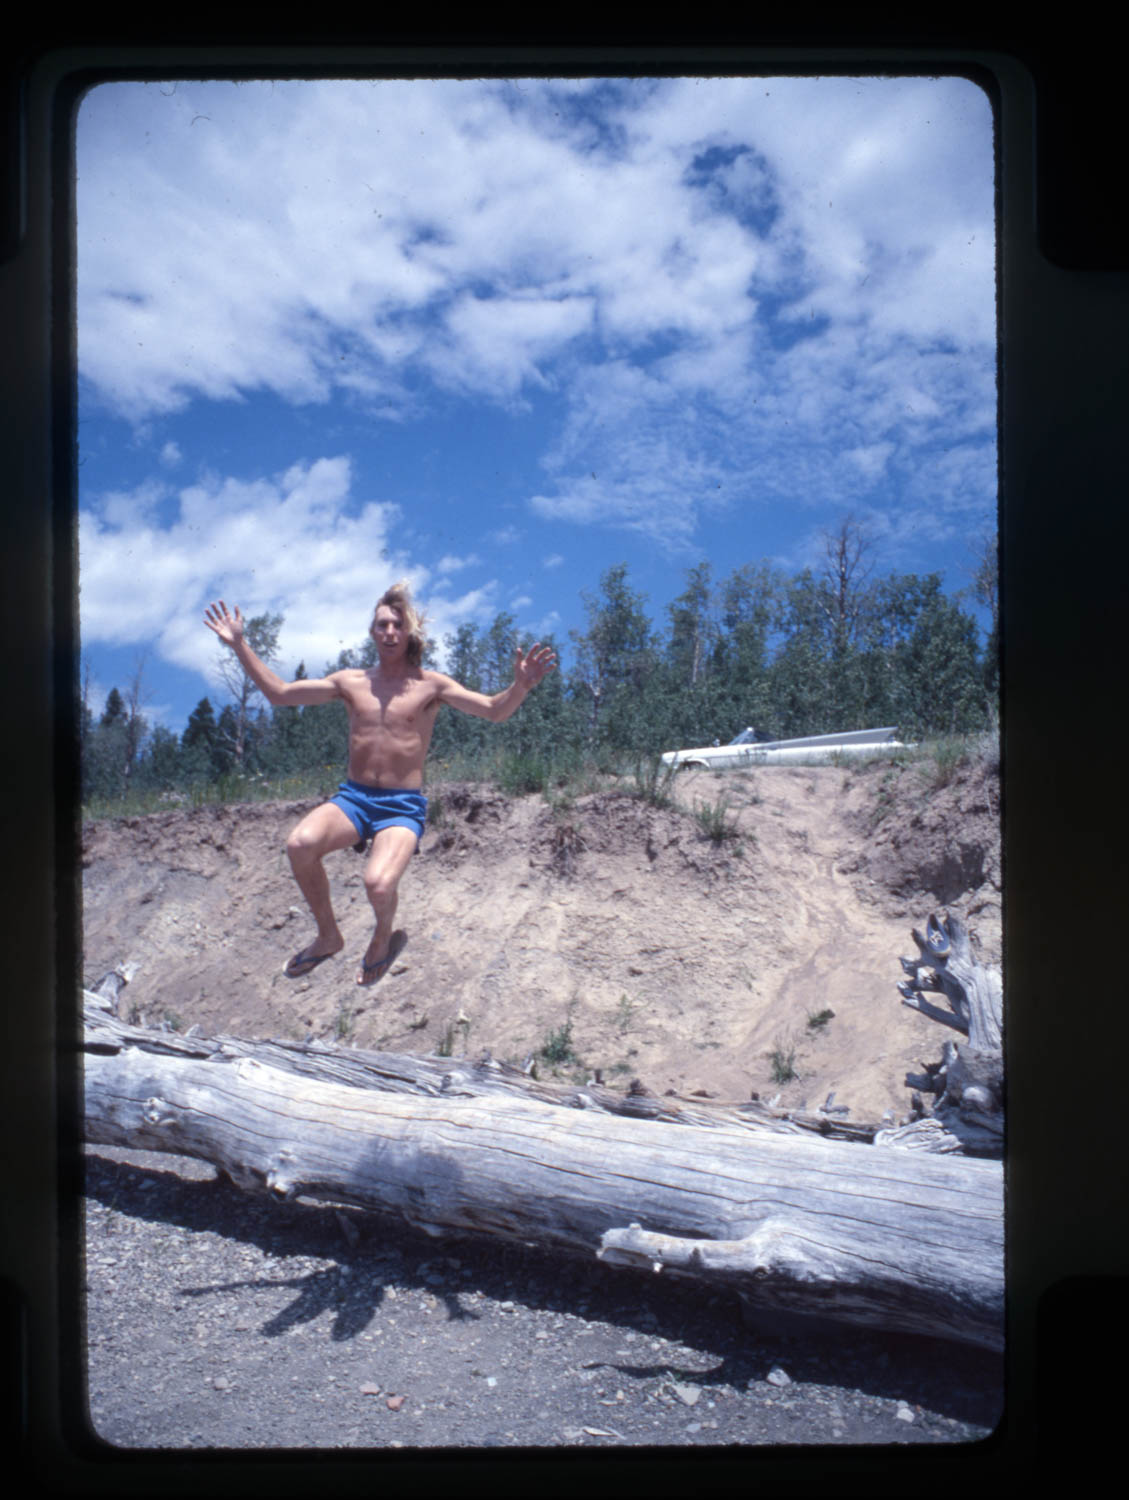 Youth is wasted on the young, except for Jim Graves who was thoroughly enjoying his youth at a stop in Wyoming in 1977.